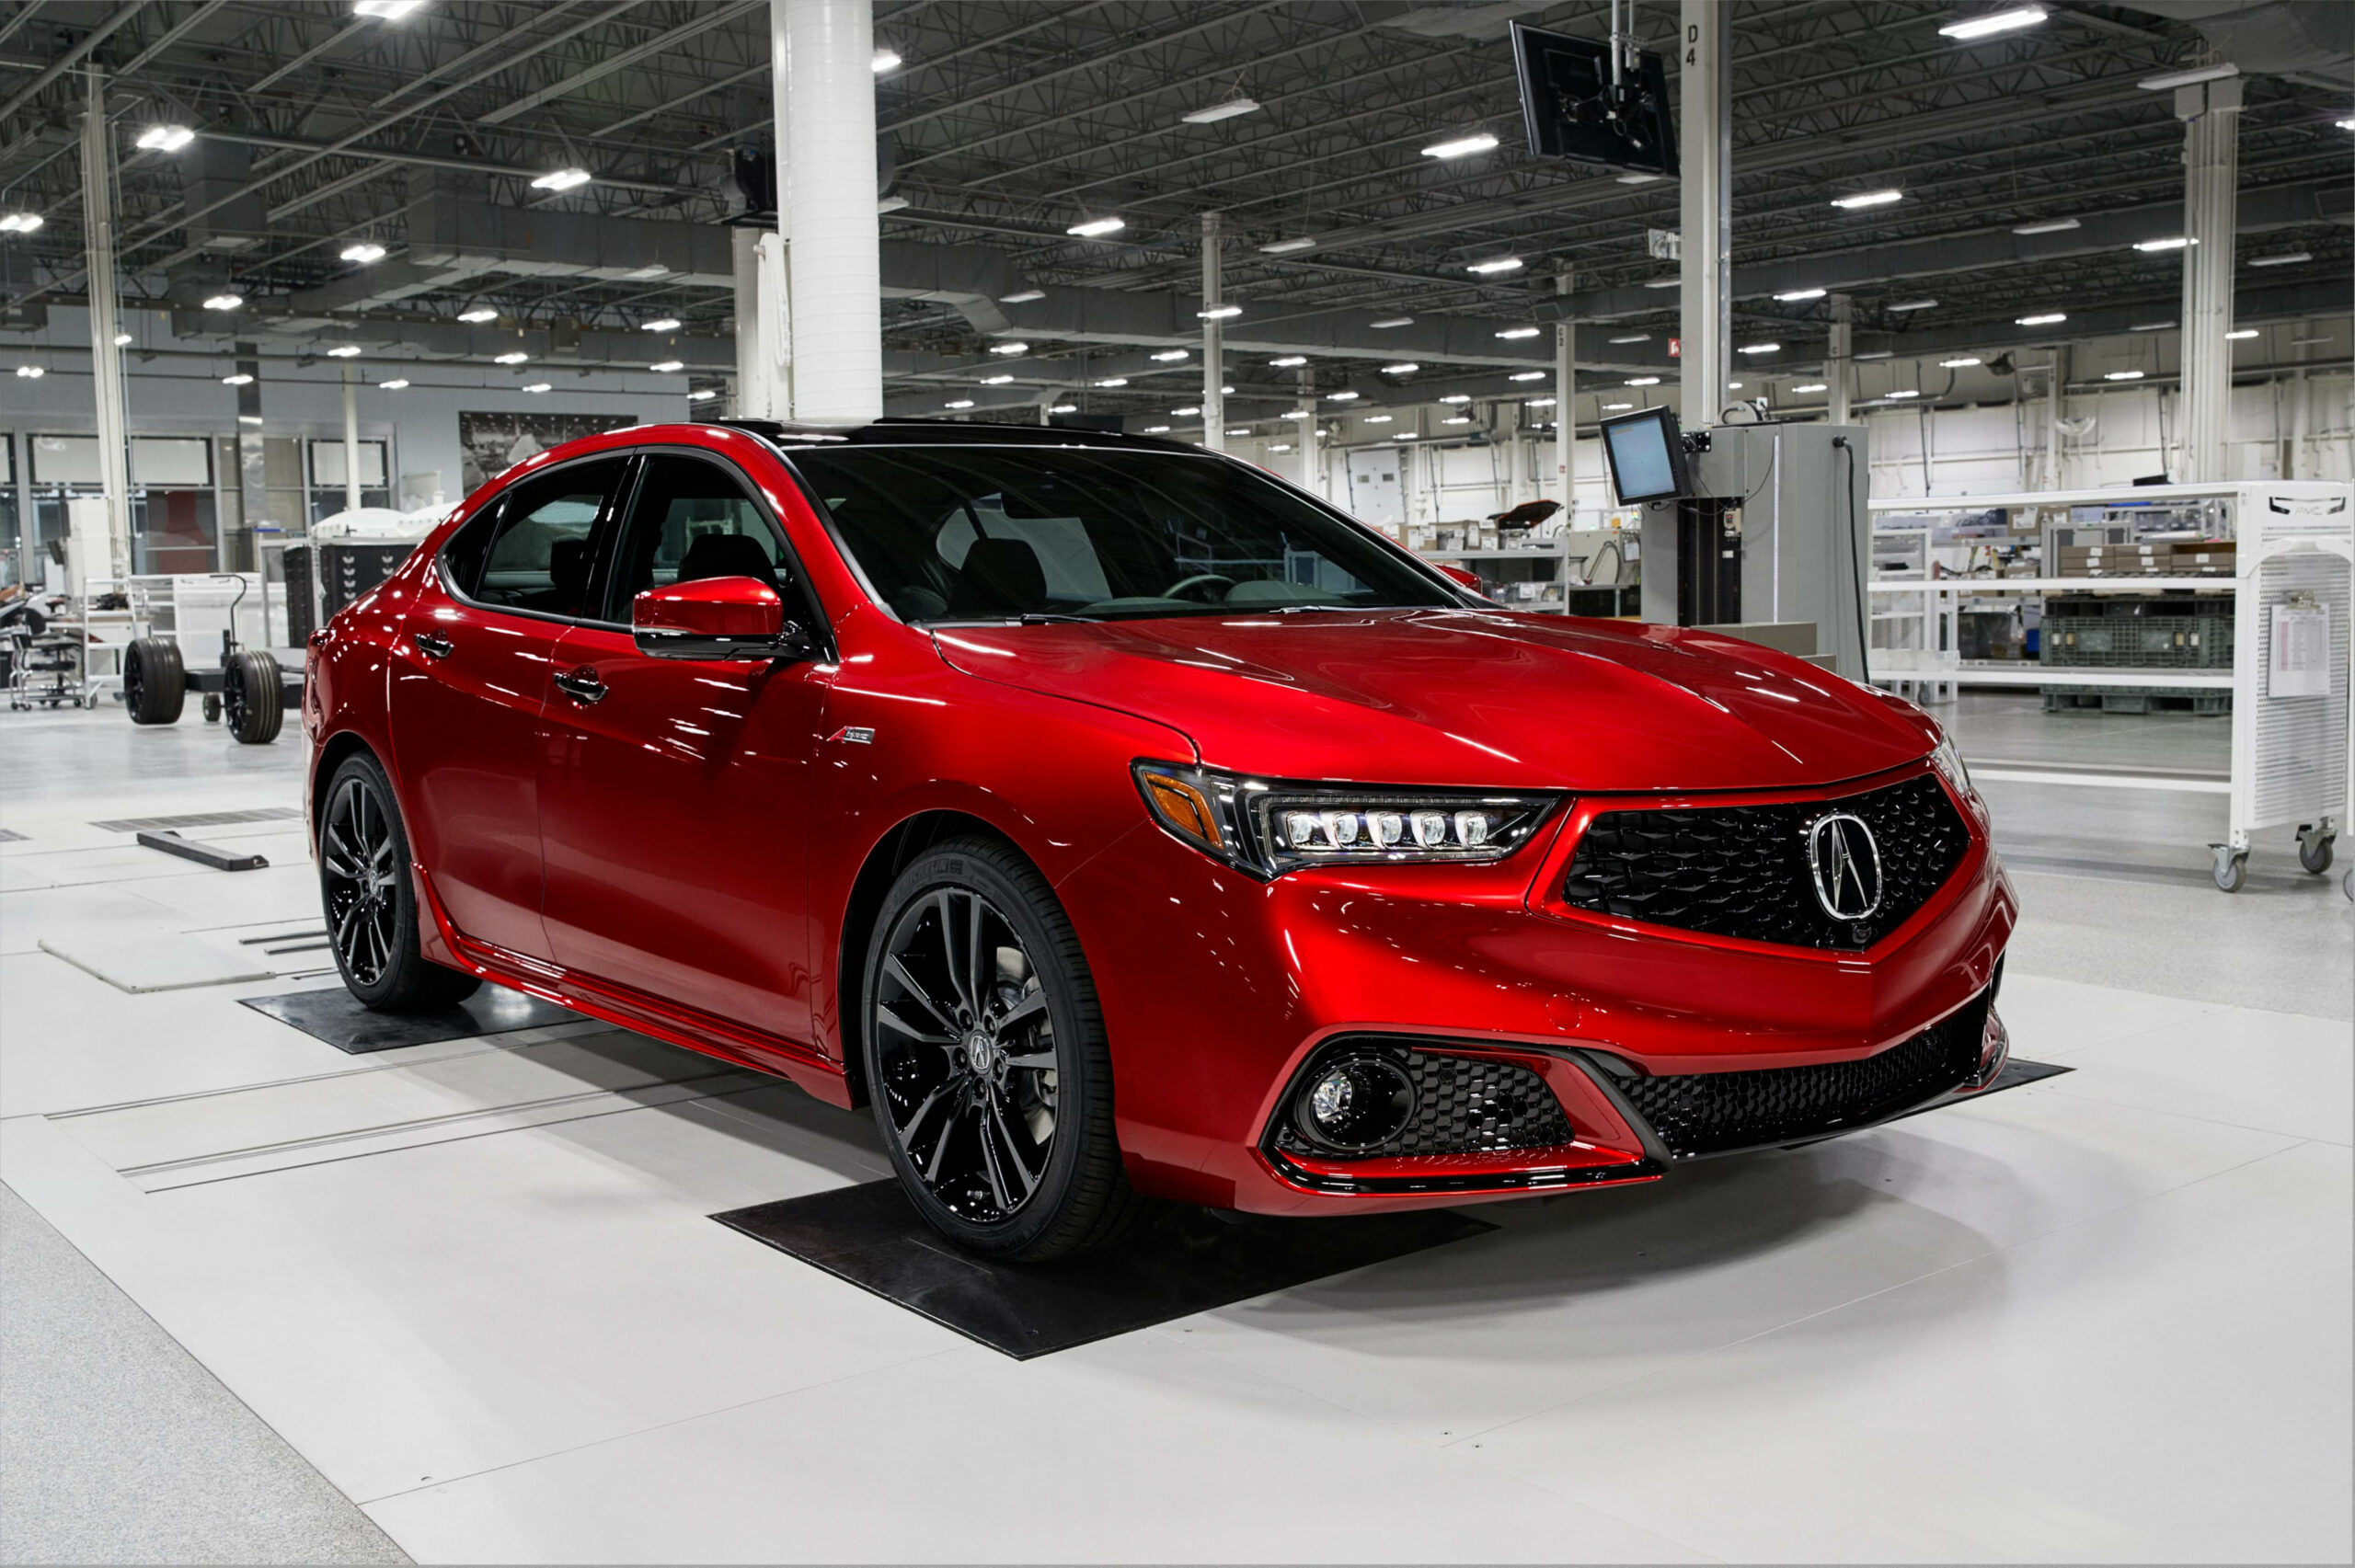 Acura Is Only Building 6 Examples of the 6 TLX PMC Edition ..